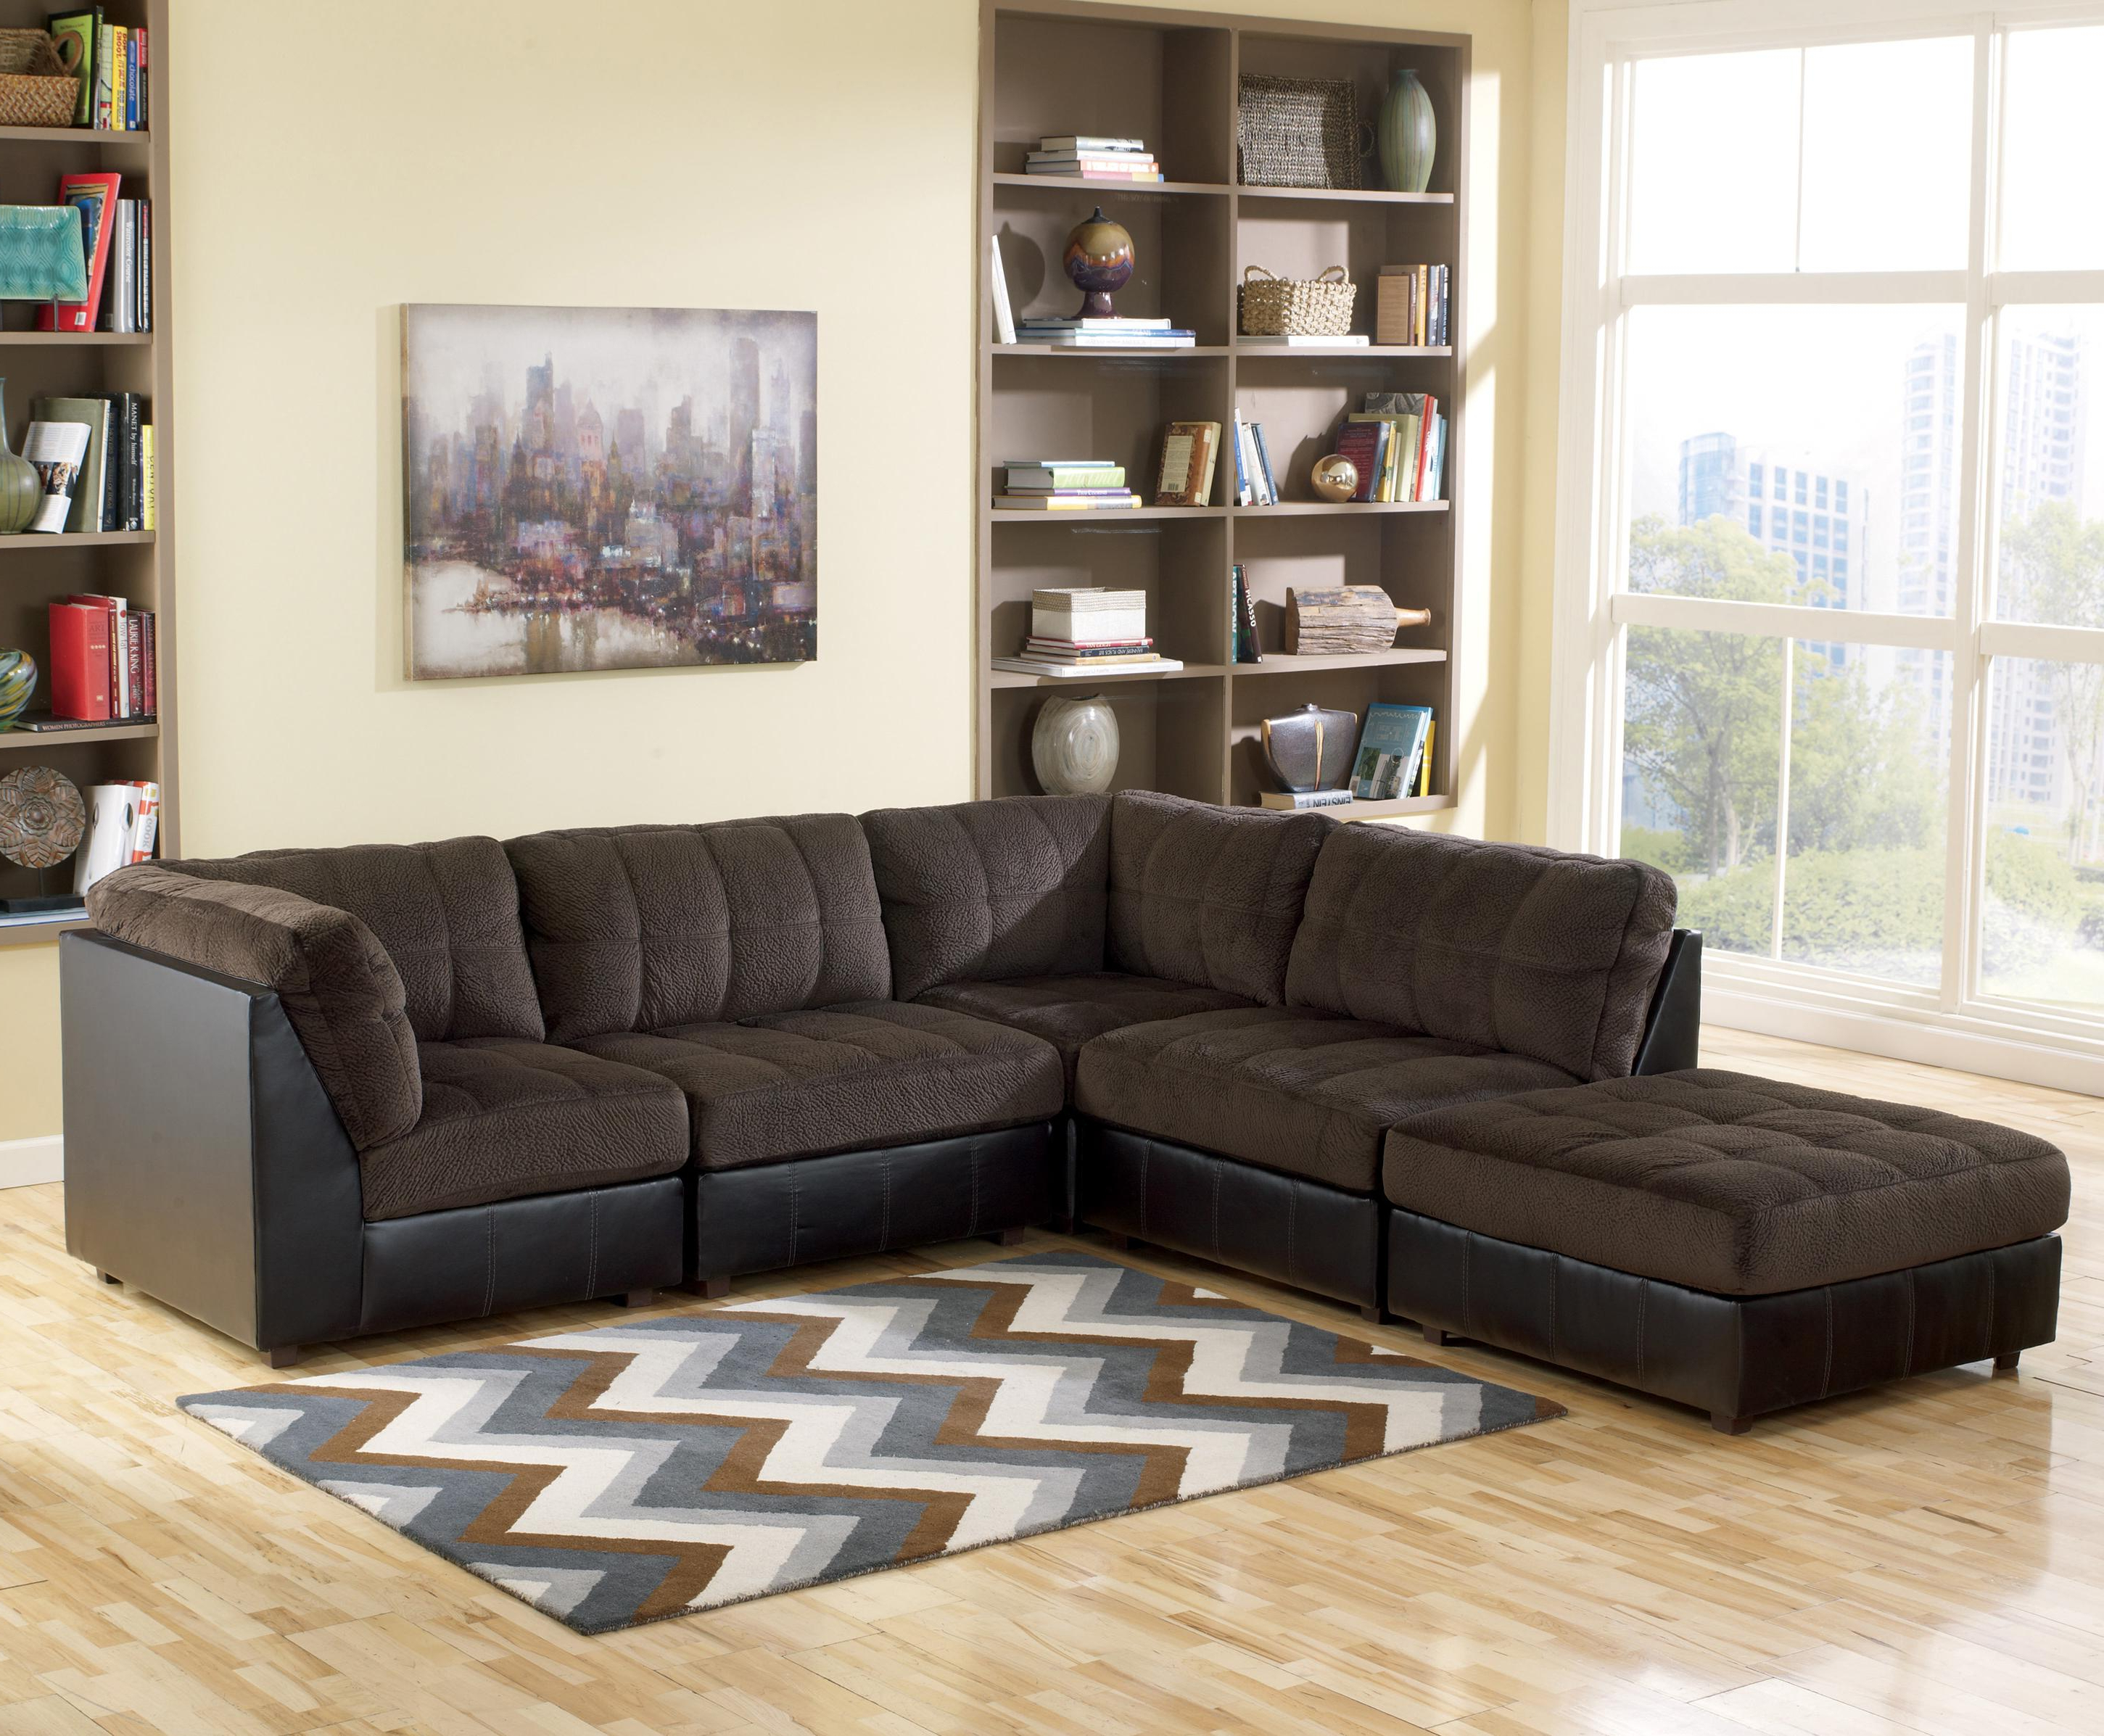 Signature Designashley Hobokin – Chocolate Contemporary 5 Piece Intended For Most Recently Released Norfolk Chocolate 3 Piece Sectionals With Raf Chaise (View 17 of 20)